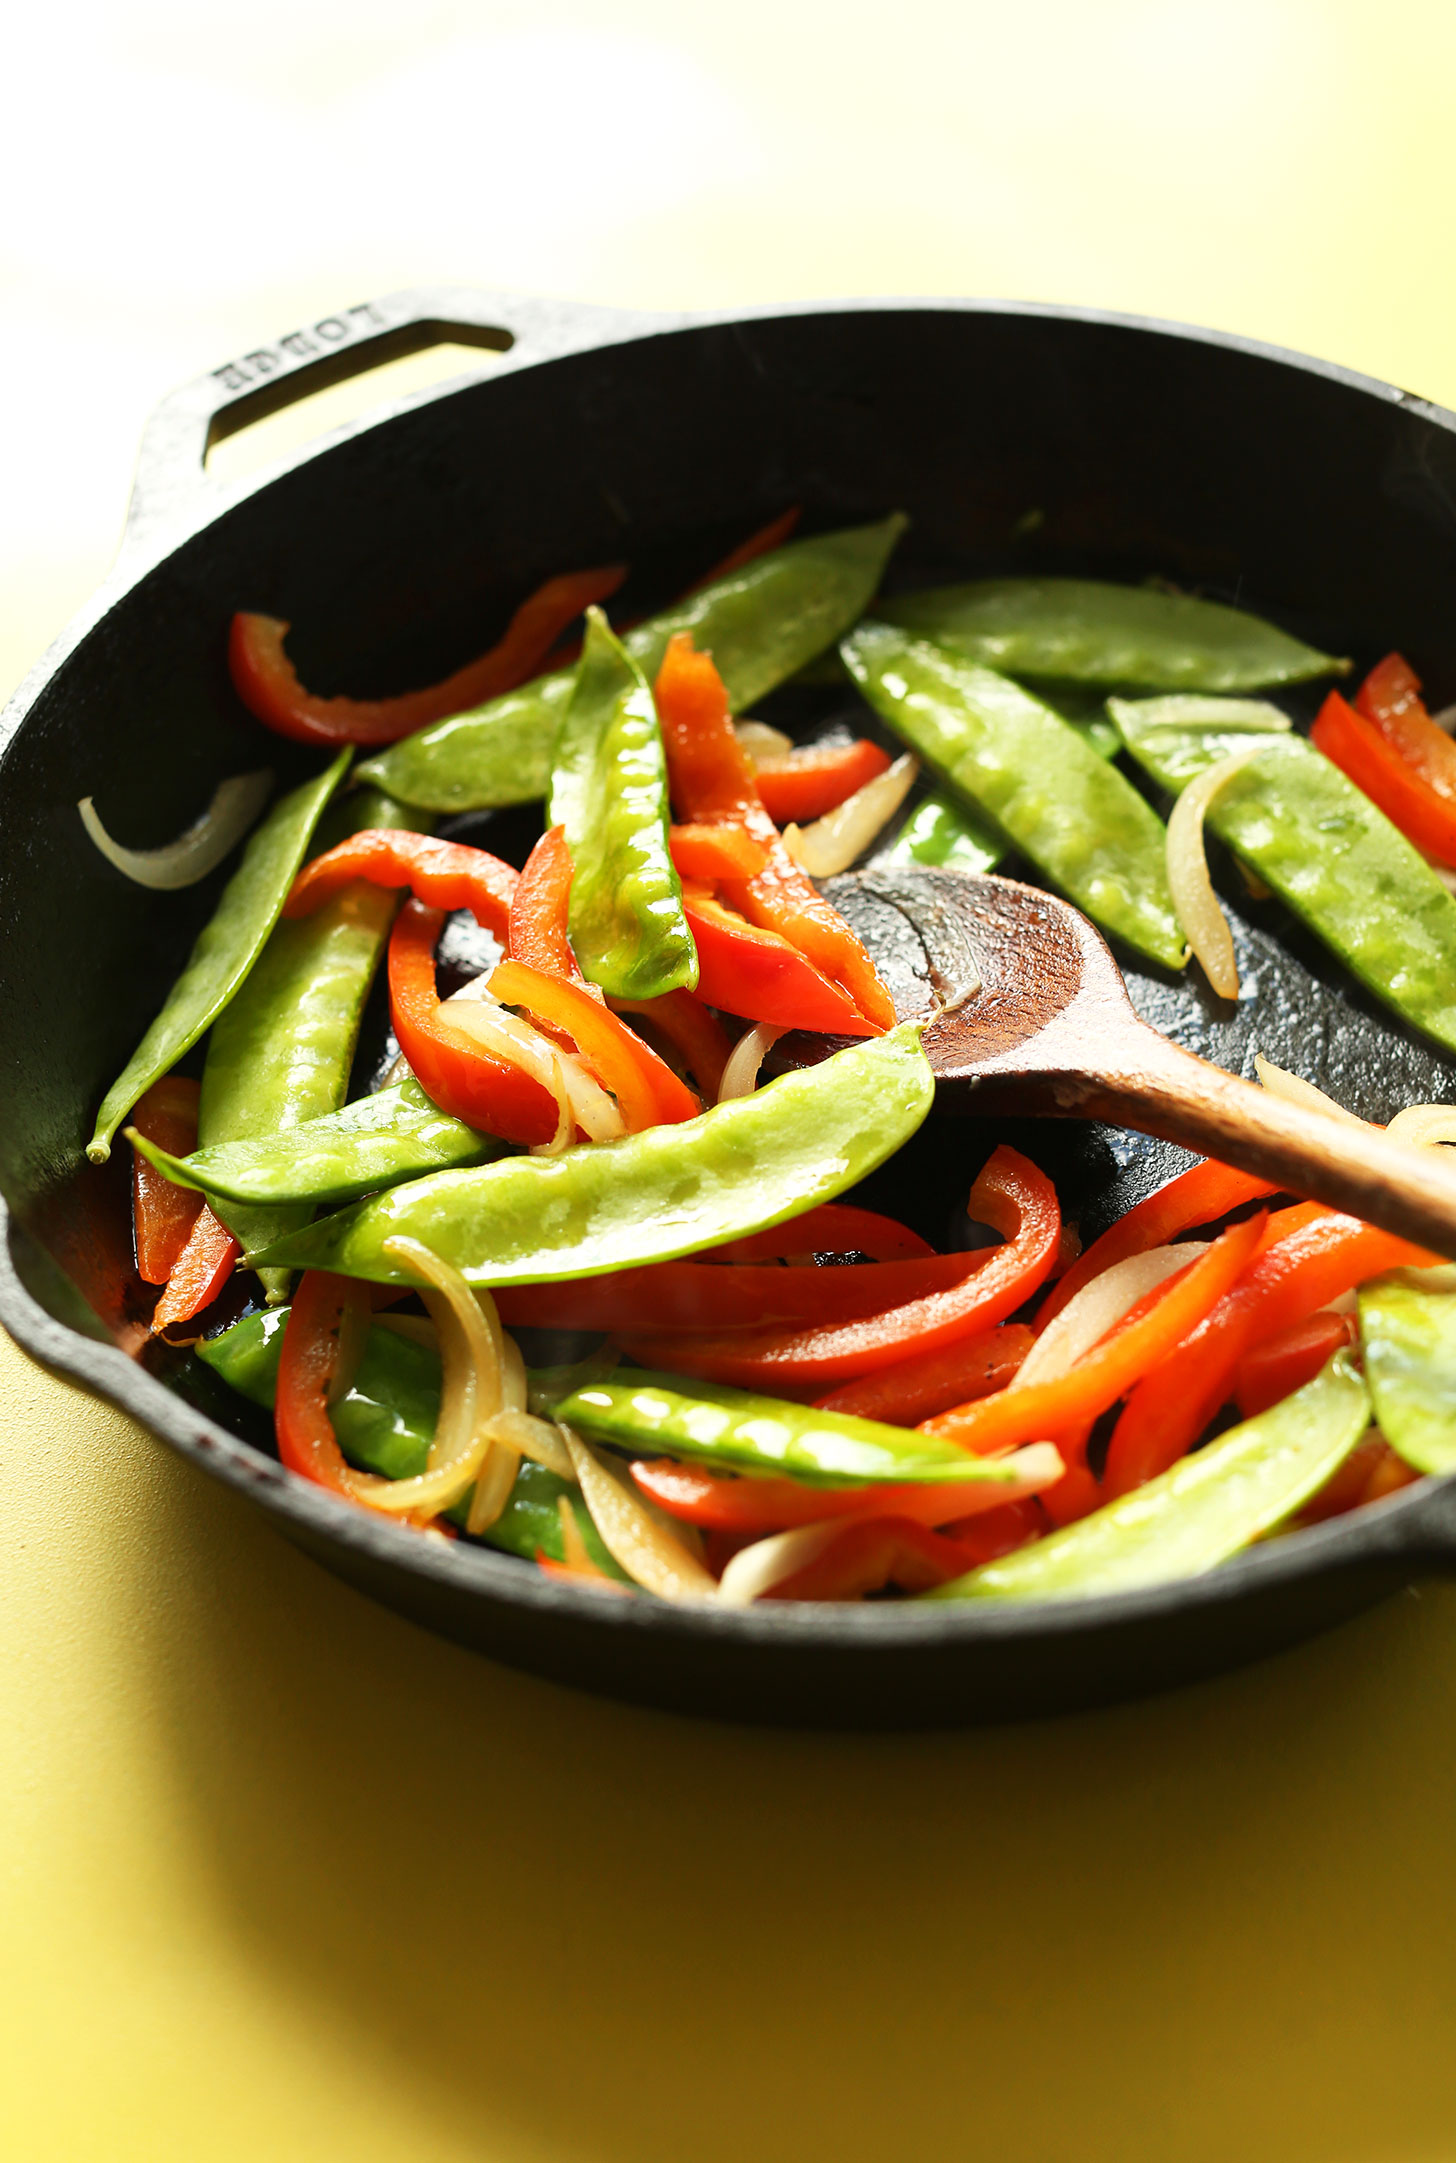 Sautéing vegetables in a cast-iron skillet for our Vegan Singapore Noodles recipe